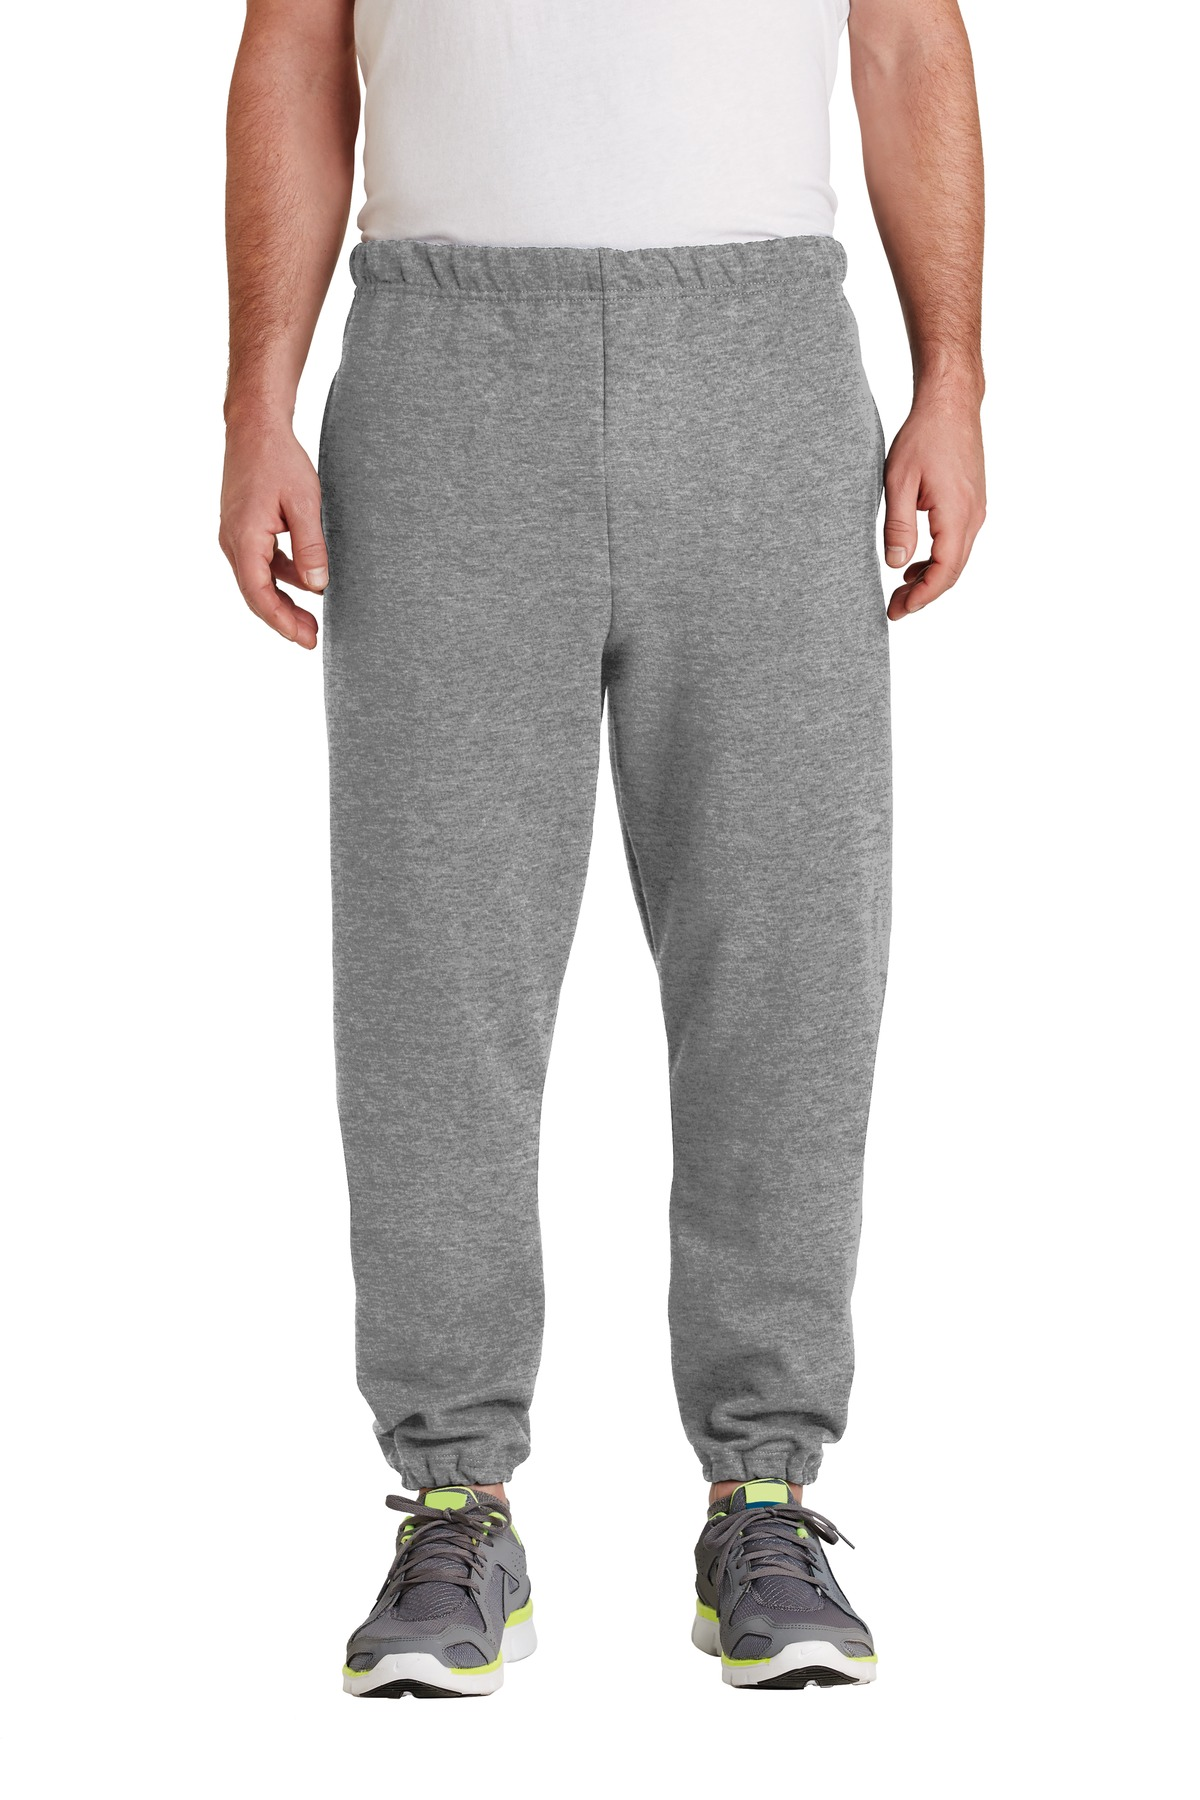 JERZEES ®  SUPER SWEATS ®  NuBlend ®  - Sweatpant with Pockets.  4850MP - Oxford